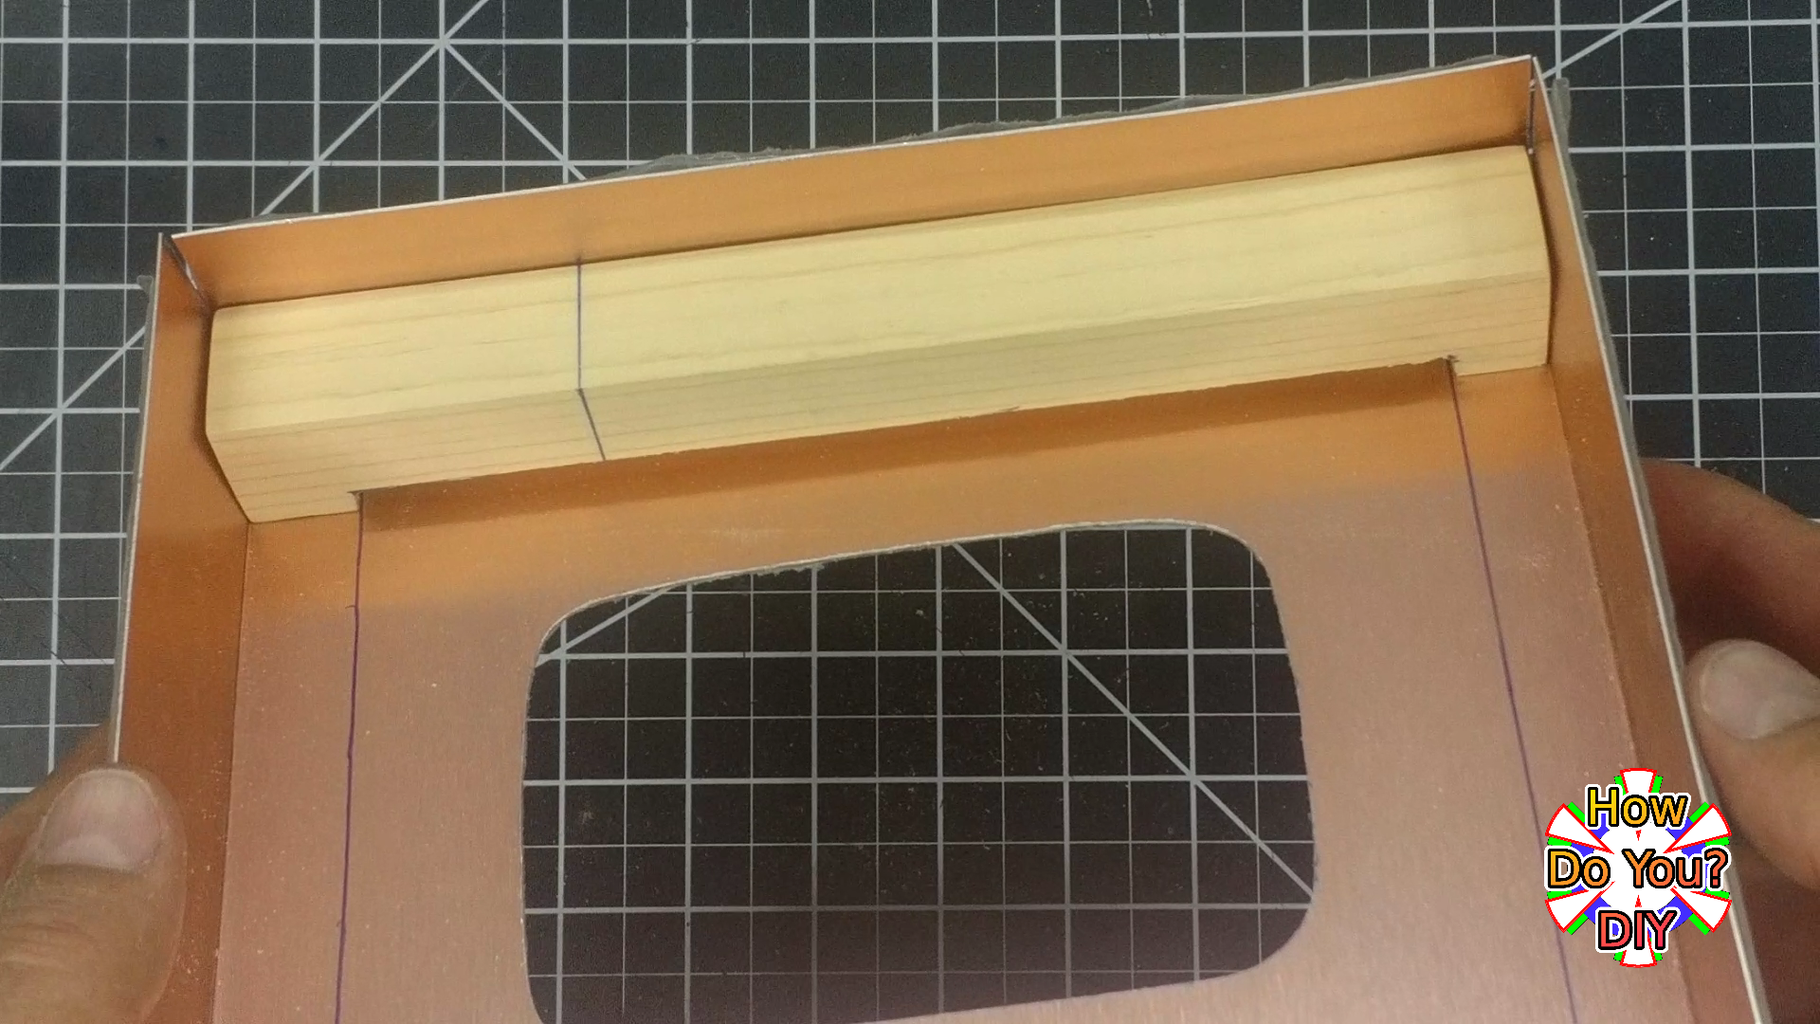 Positioning the Wood Supports